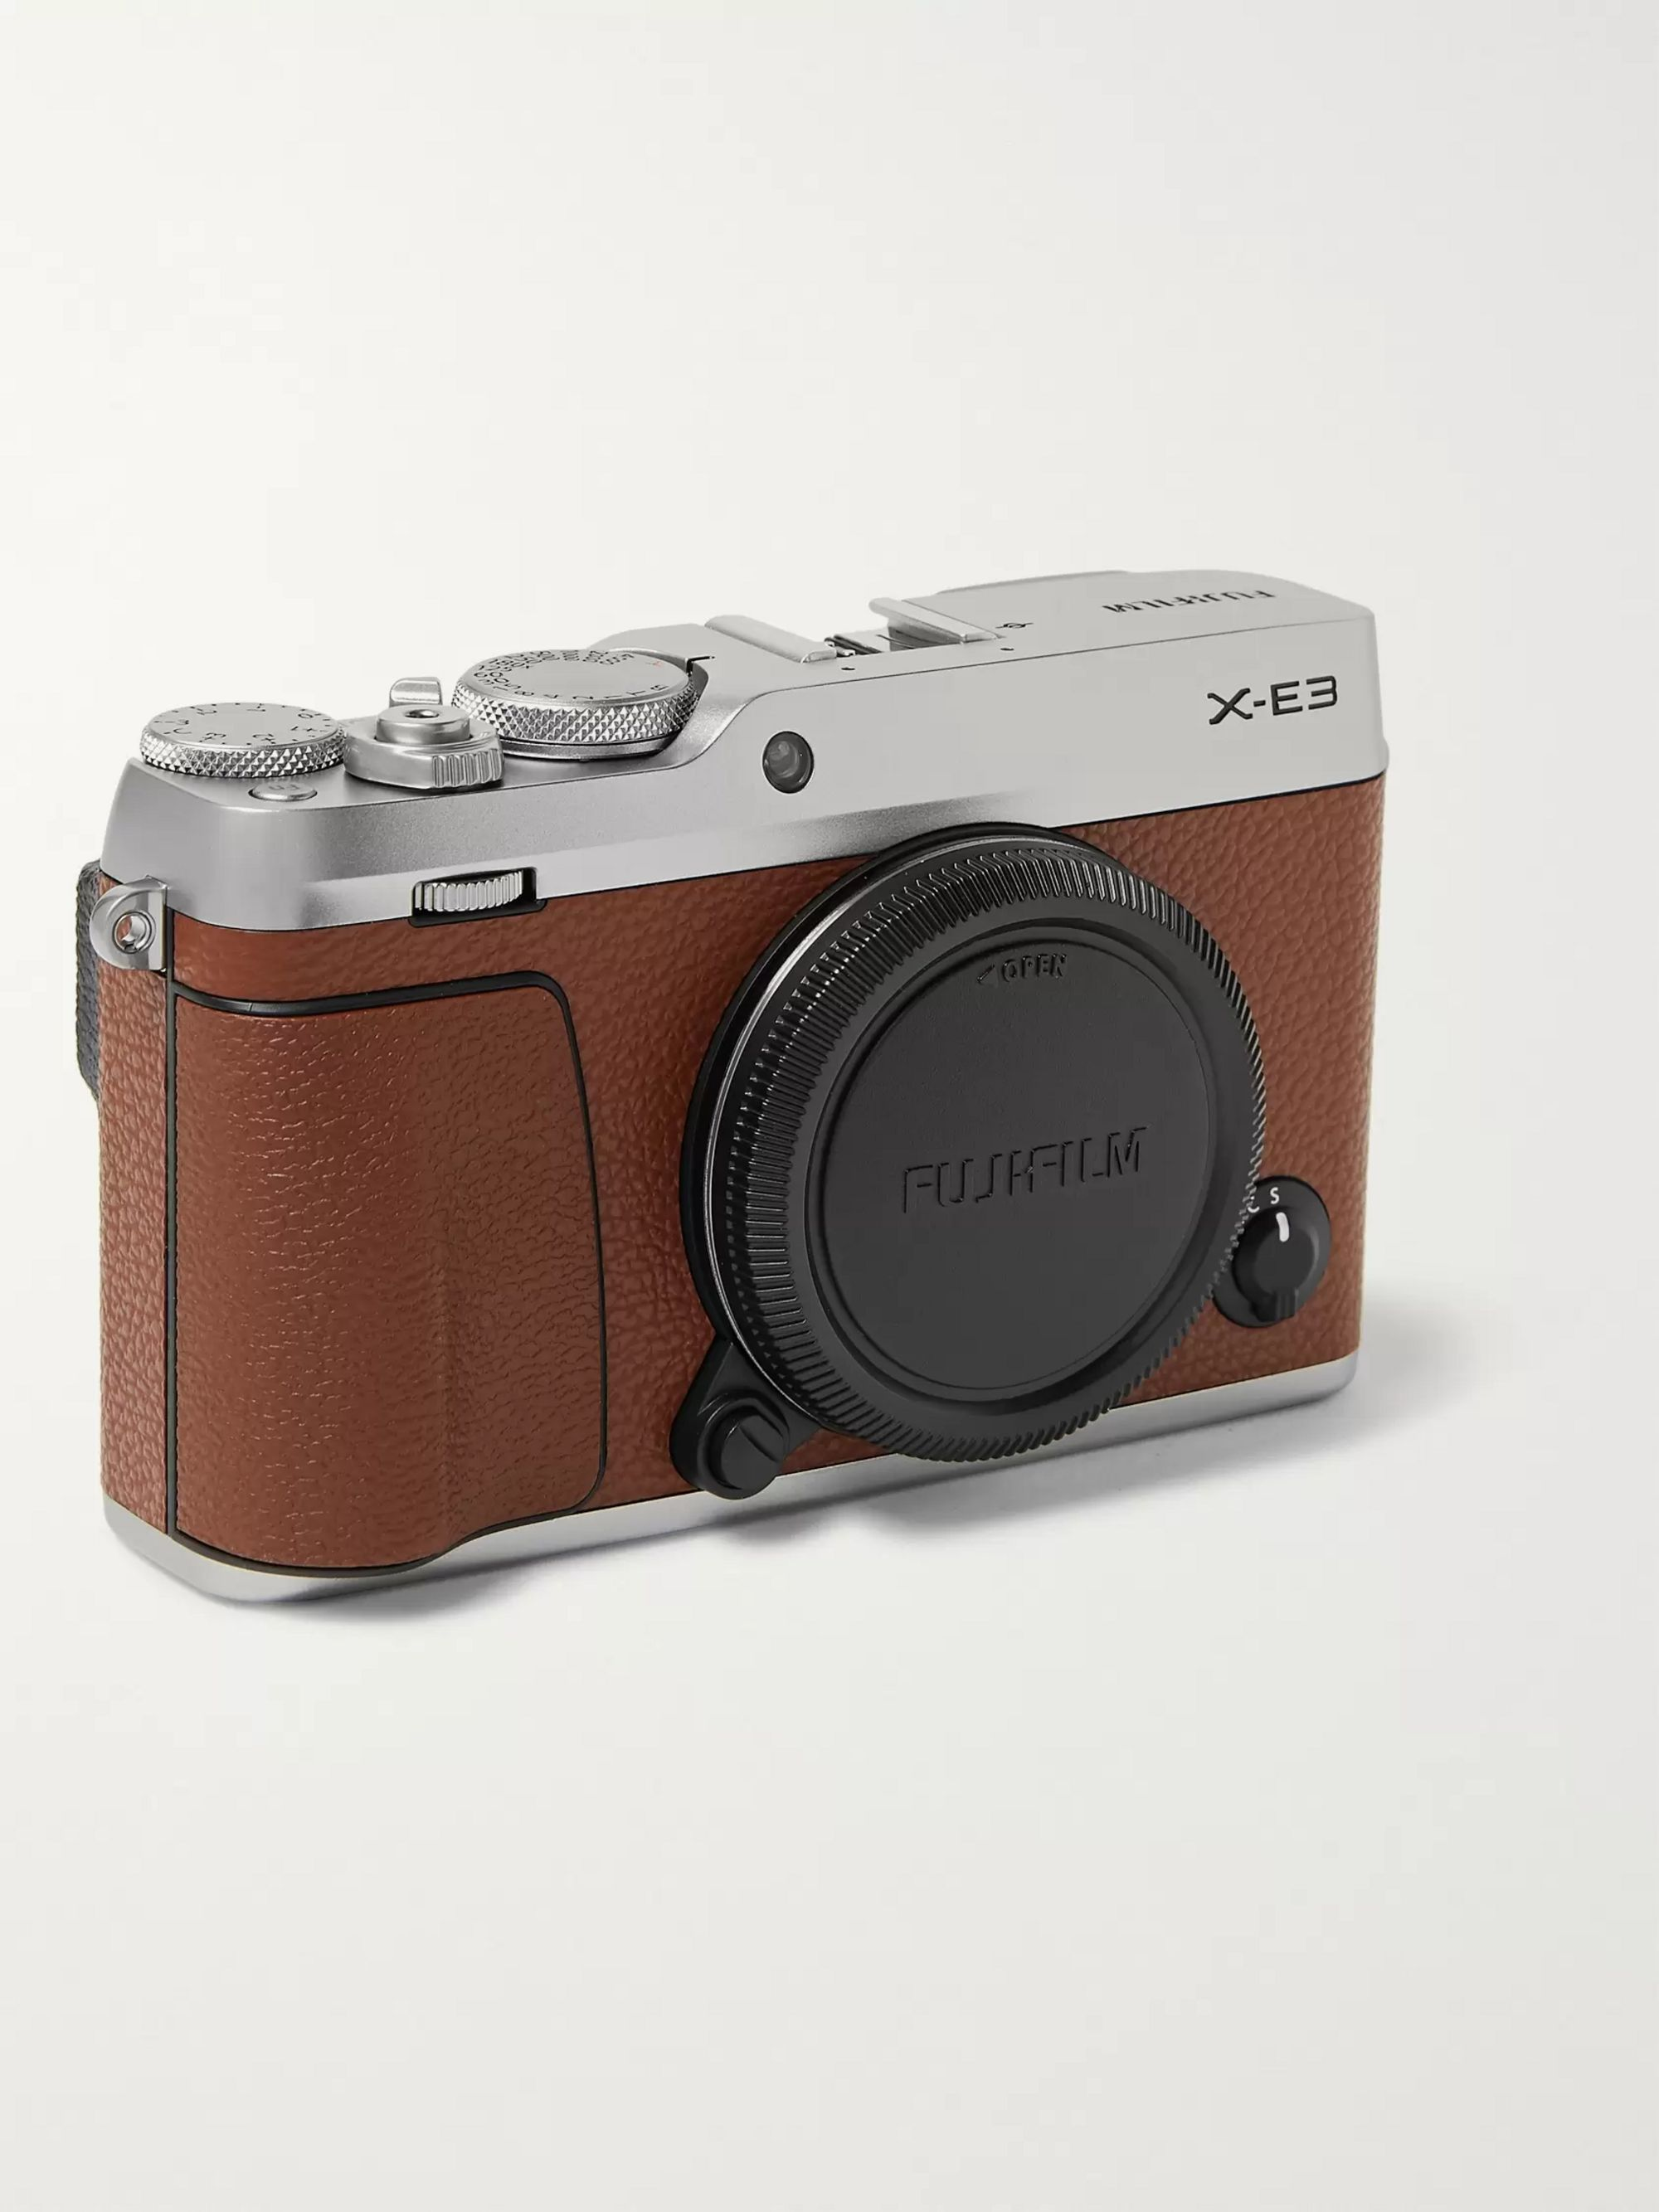 Fujifilm X-E3 Compact Camera with 18-55mm Lens